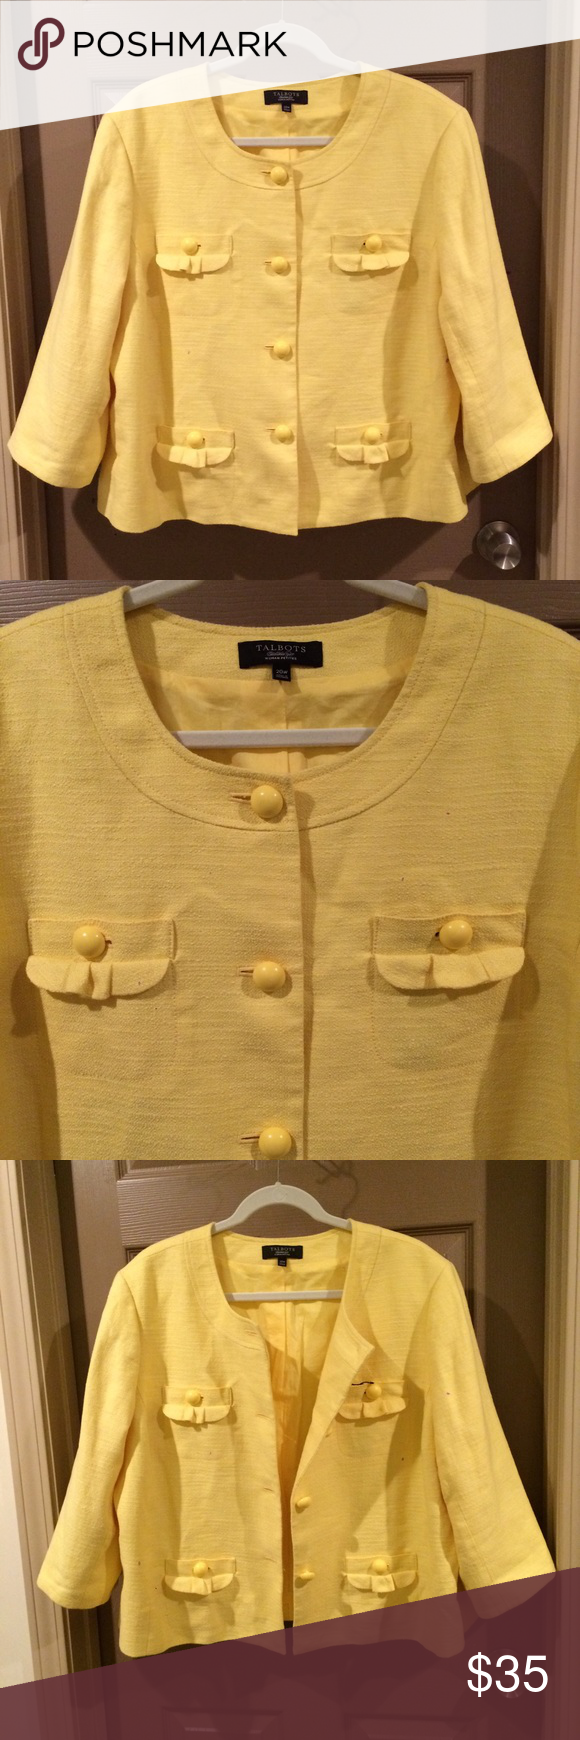 """Nwt Talbots Plus Sz Petite Yellow Suit Jacket 20W Talbots Petites Plus Size Jacket. New! Retail $189 Size 20W Bust is approx 26"""" armpit to armpit Length is approx 24"""" Jacket features 4 functional pockets 3/4 sleeves Extra button 52% cotton and 45% Linen Talbots Petites Jackets & Coats Blazers"""